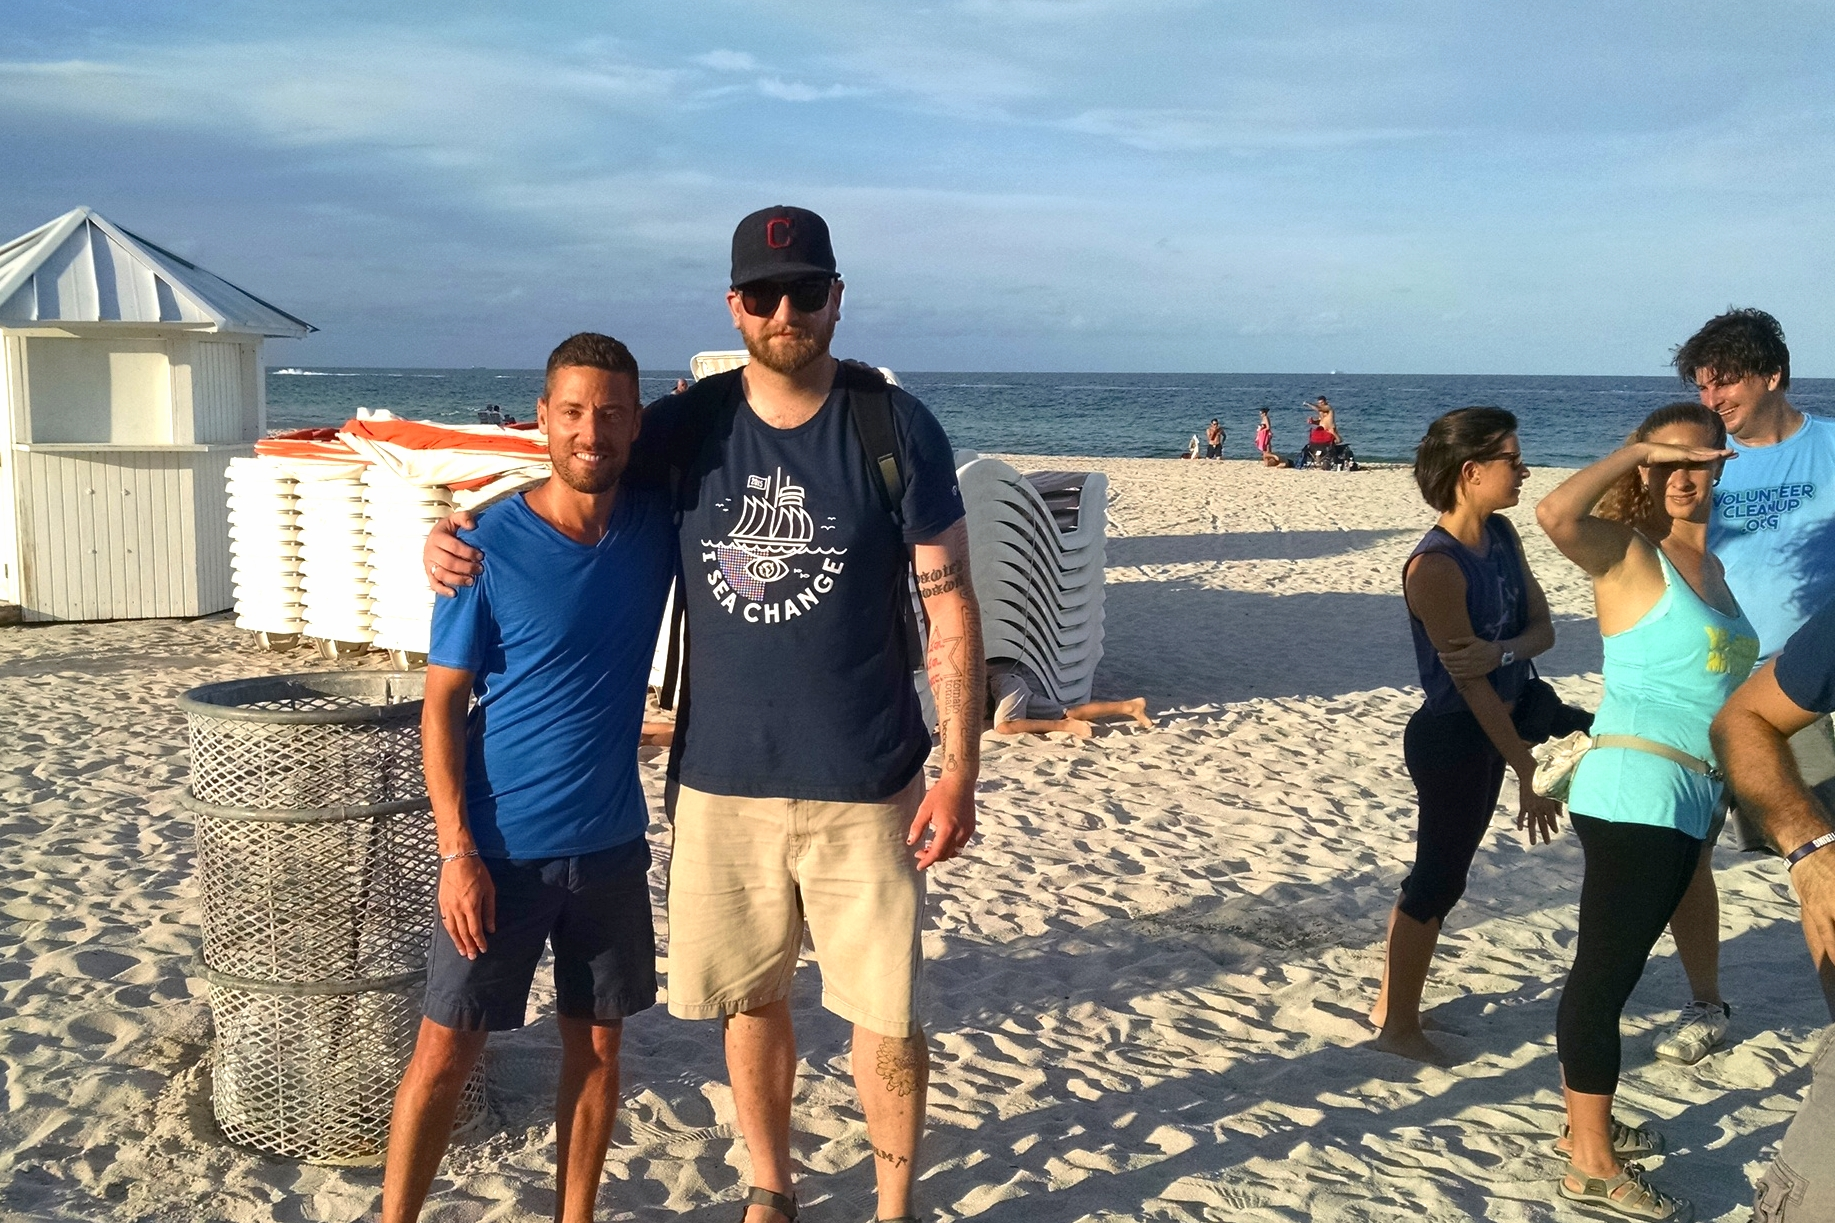 Myself and some Surfrider Miami beach clean up team. We collected over 8 bags of trash - mostly plastic wrappers, bottle caps, and microplastic pieces - in just a couple of hours.